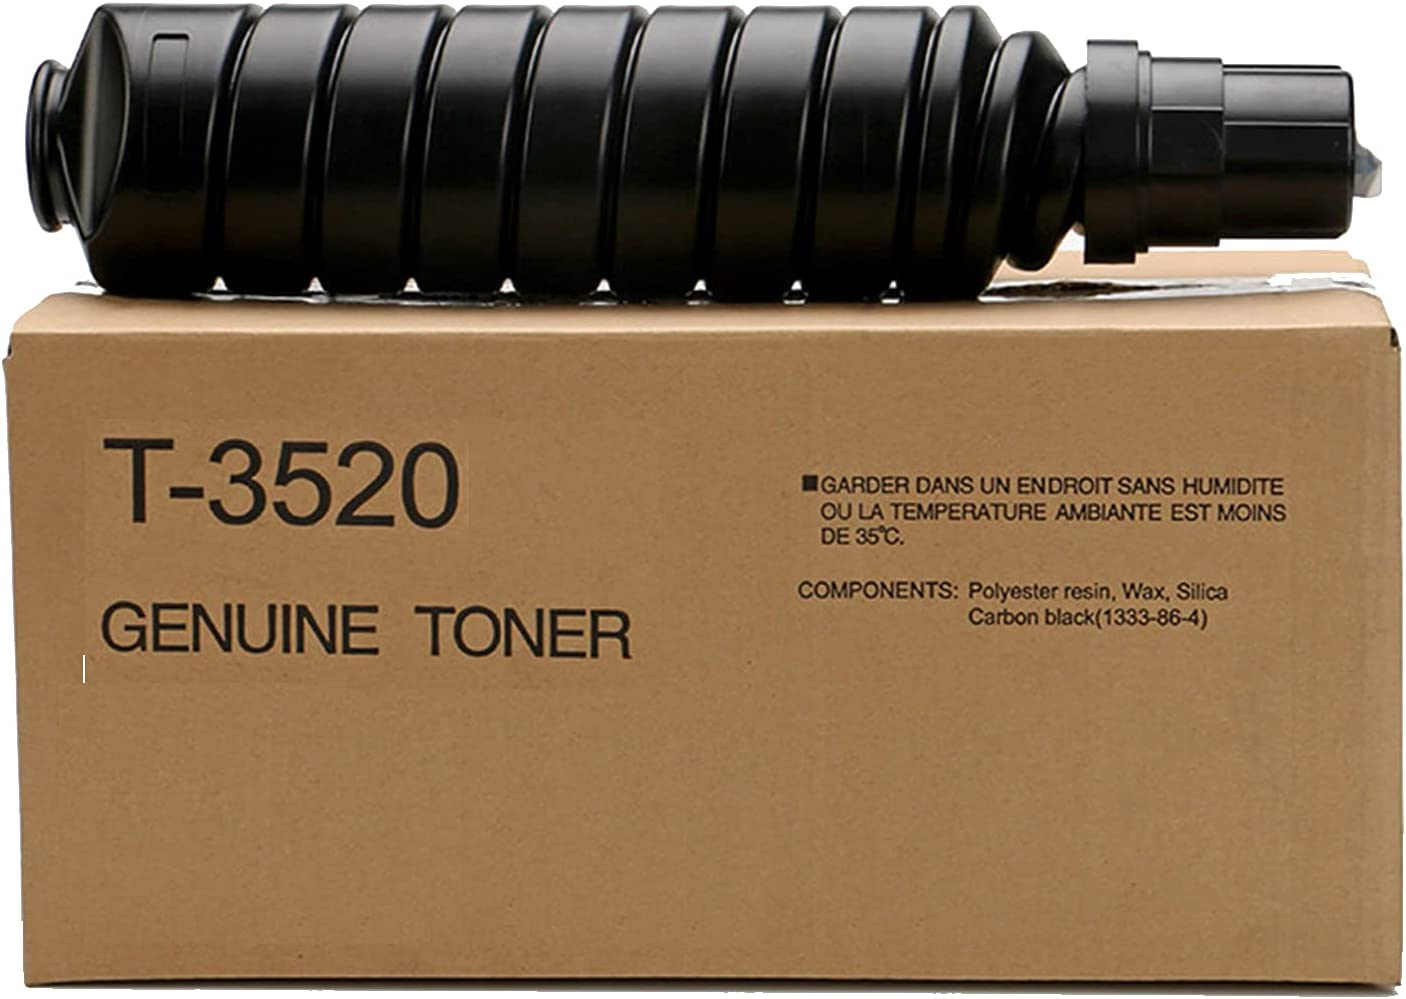 SSBY Compatible Toner Cartridge Replacement for Toshiba T-3520 C/D/E,to Use with E-Studio 350 450 352 452 352S 452S Printer Black